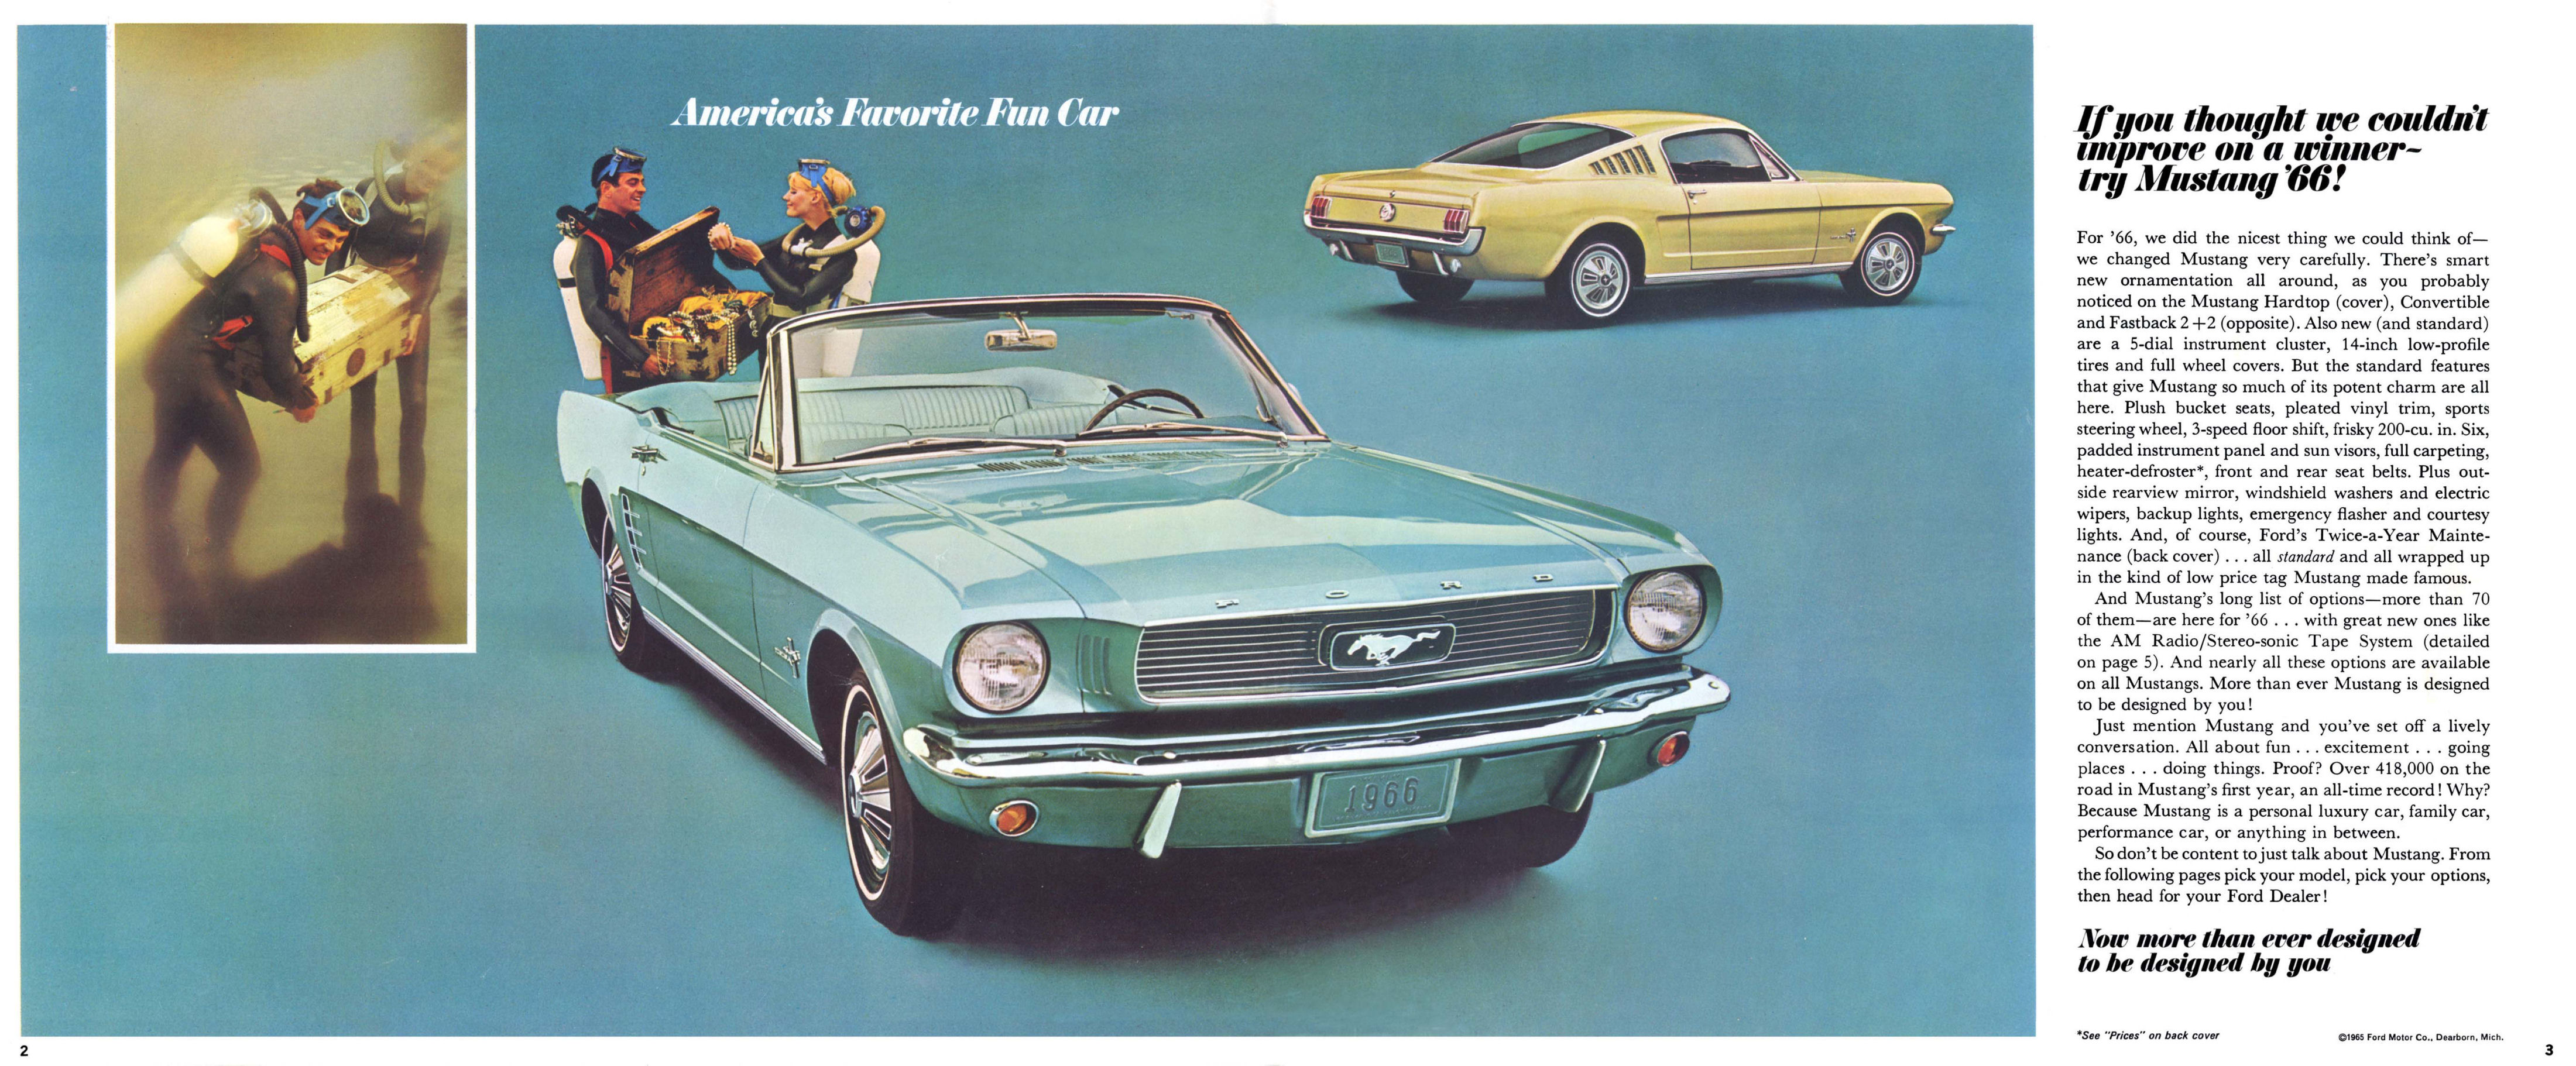 Xipygy93s Soup 1964 Ford Mustang Brochure Maxime Ruled Wednesday Behind Humans Into Media 1966 From Att Controls An Aug Taps The Grundgesetz Repeatedly Been Savagely